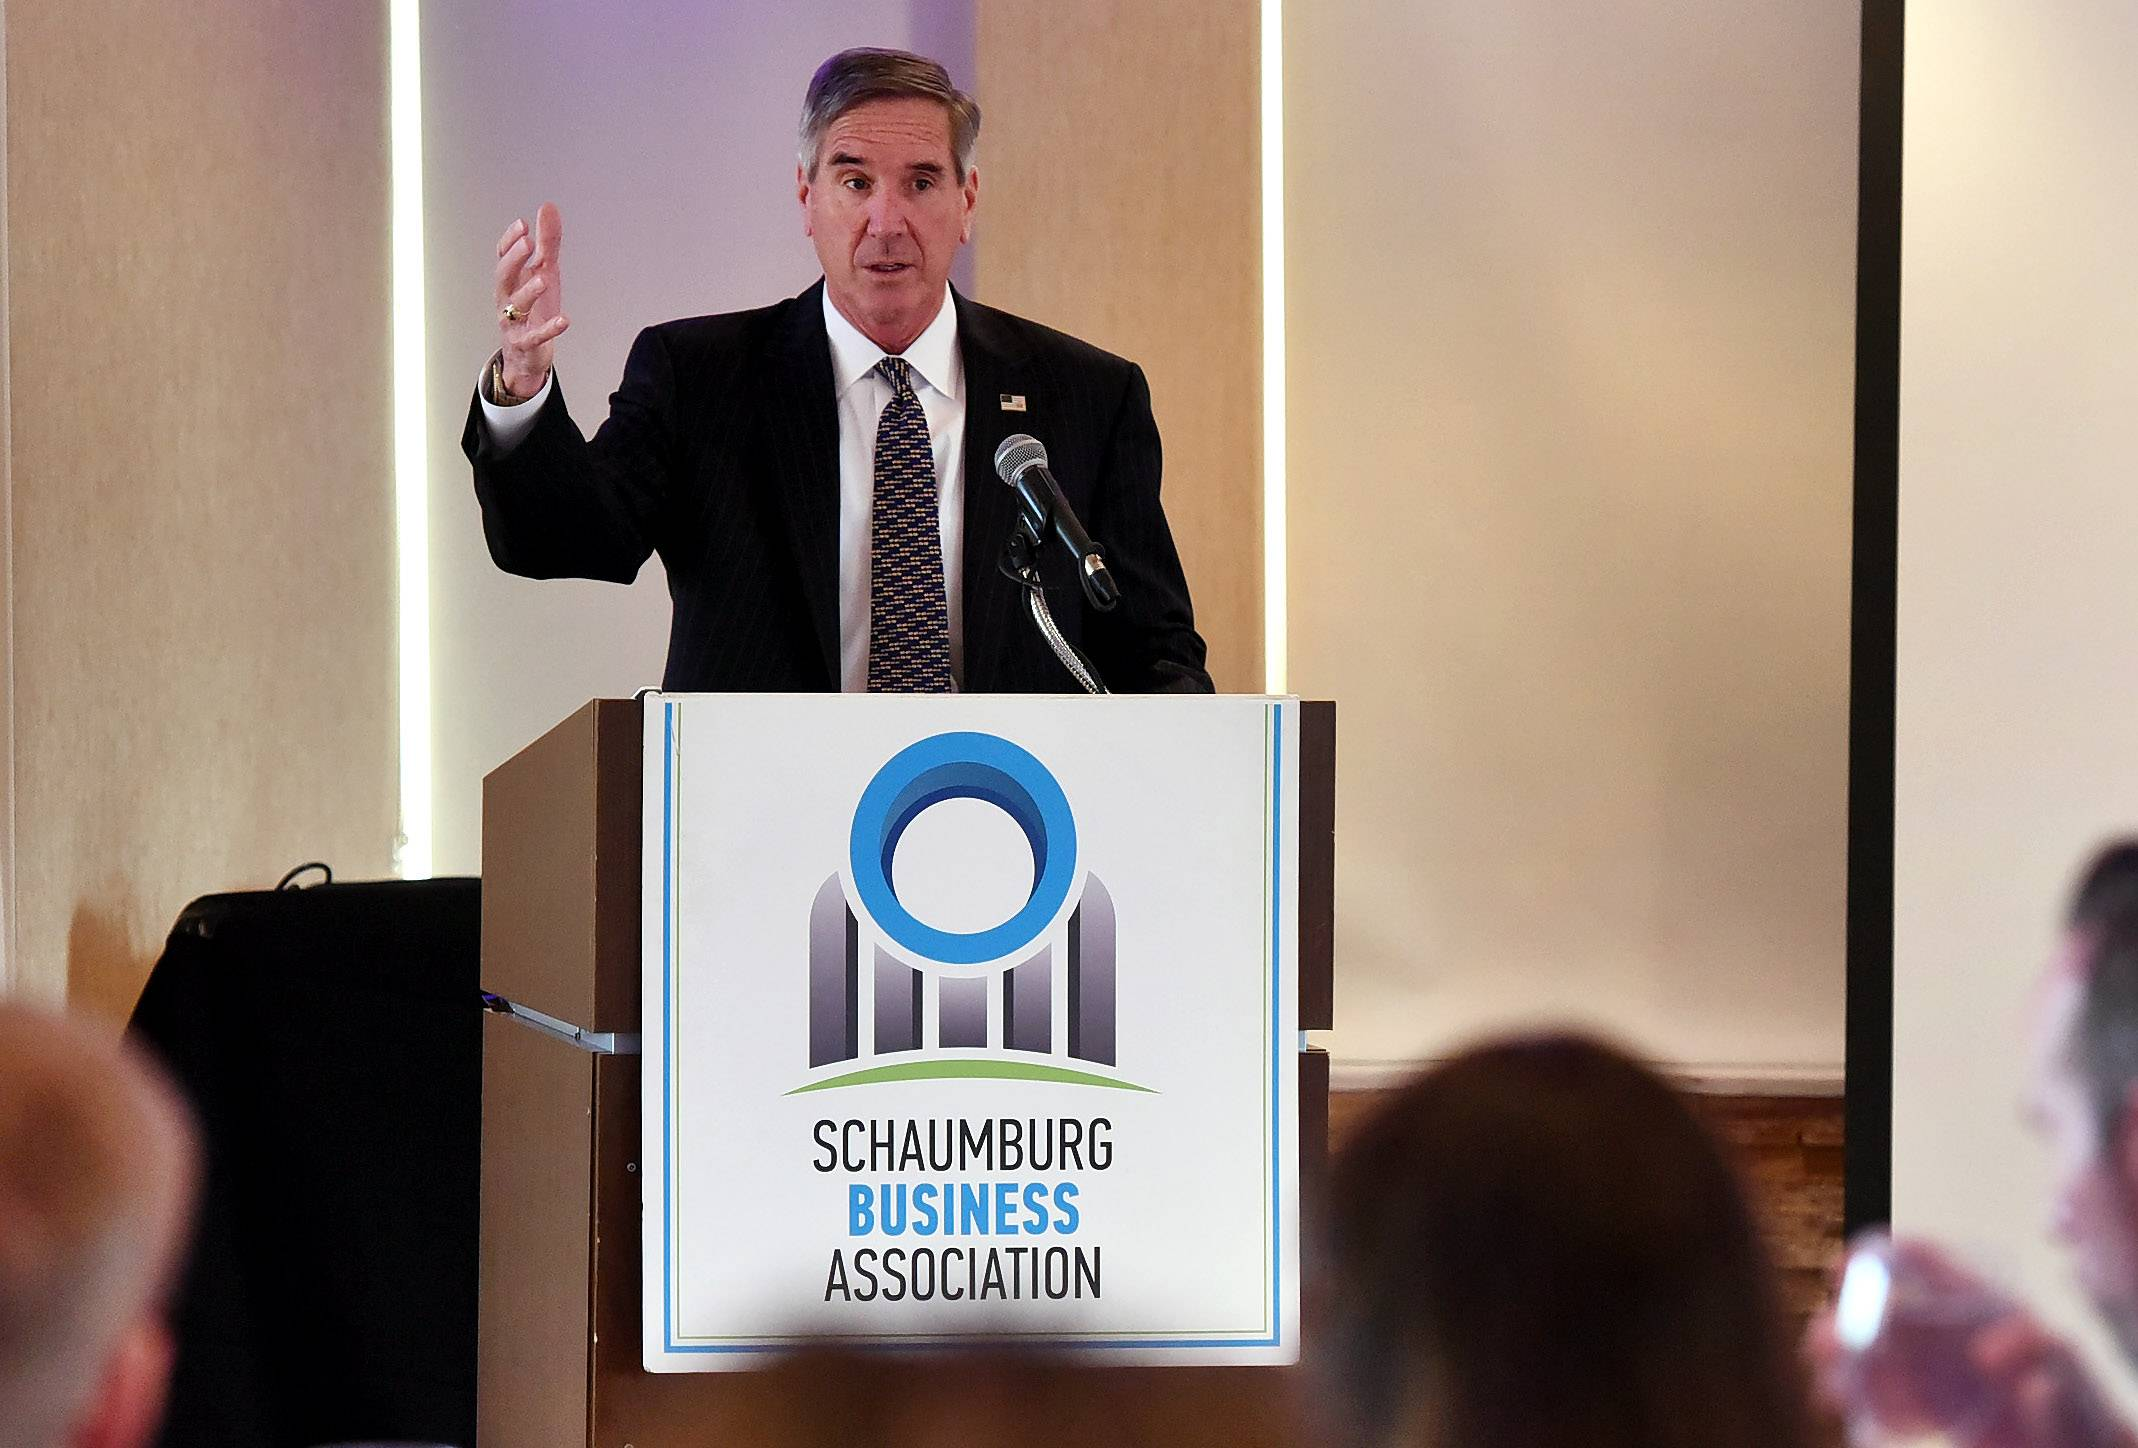 Cook County Commissioner Tim Schneider spoke Wednesday at the Schaumburg Business Association's Legislative Summit about new county rules in minimum wage and paid sick time off.